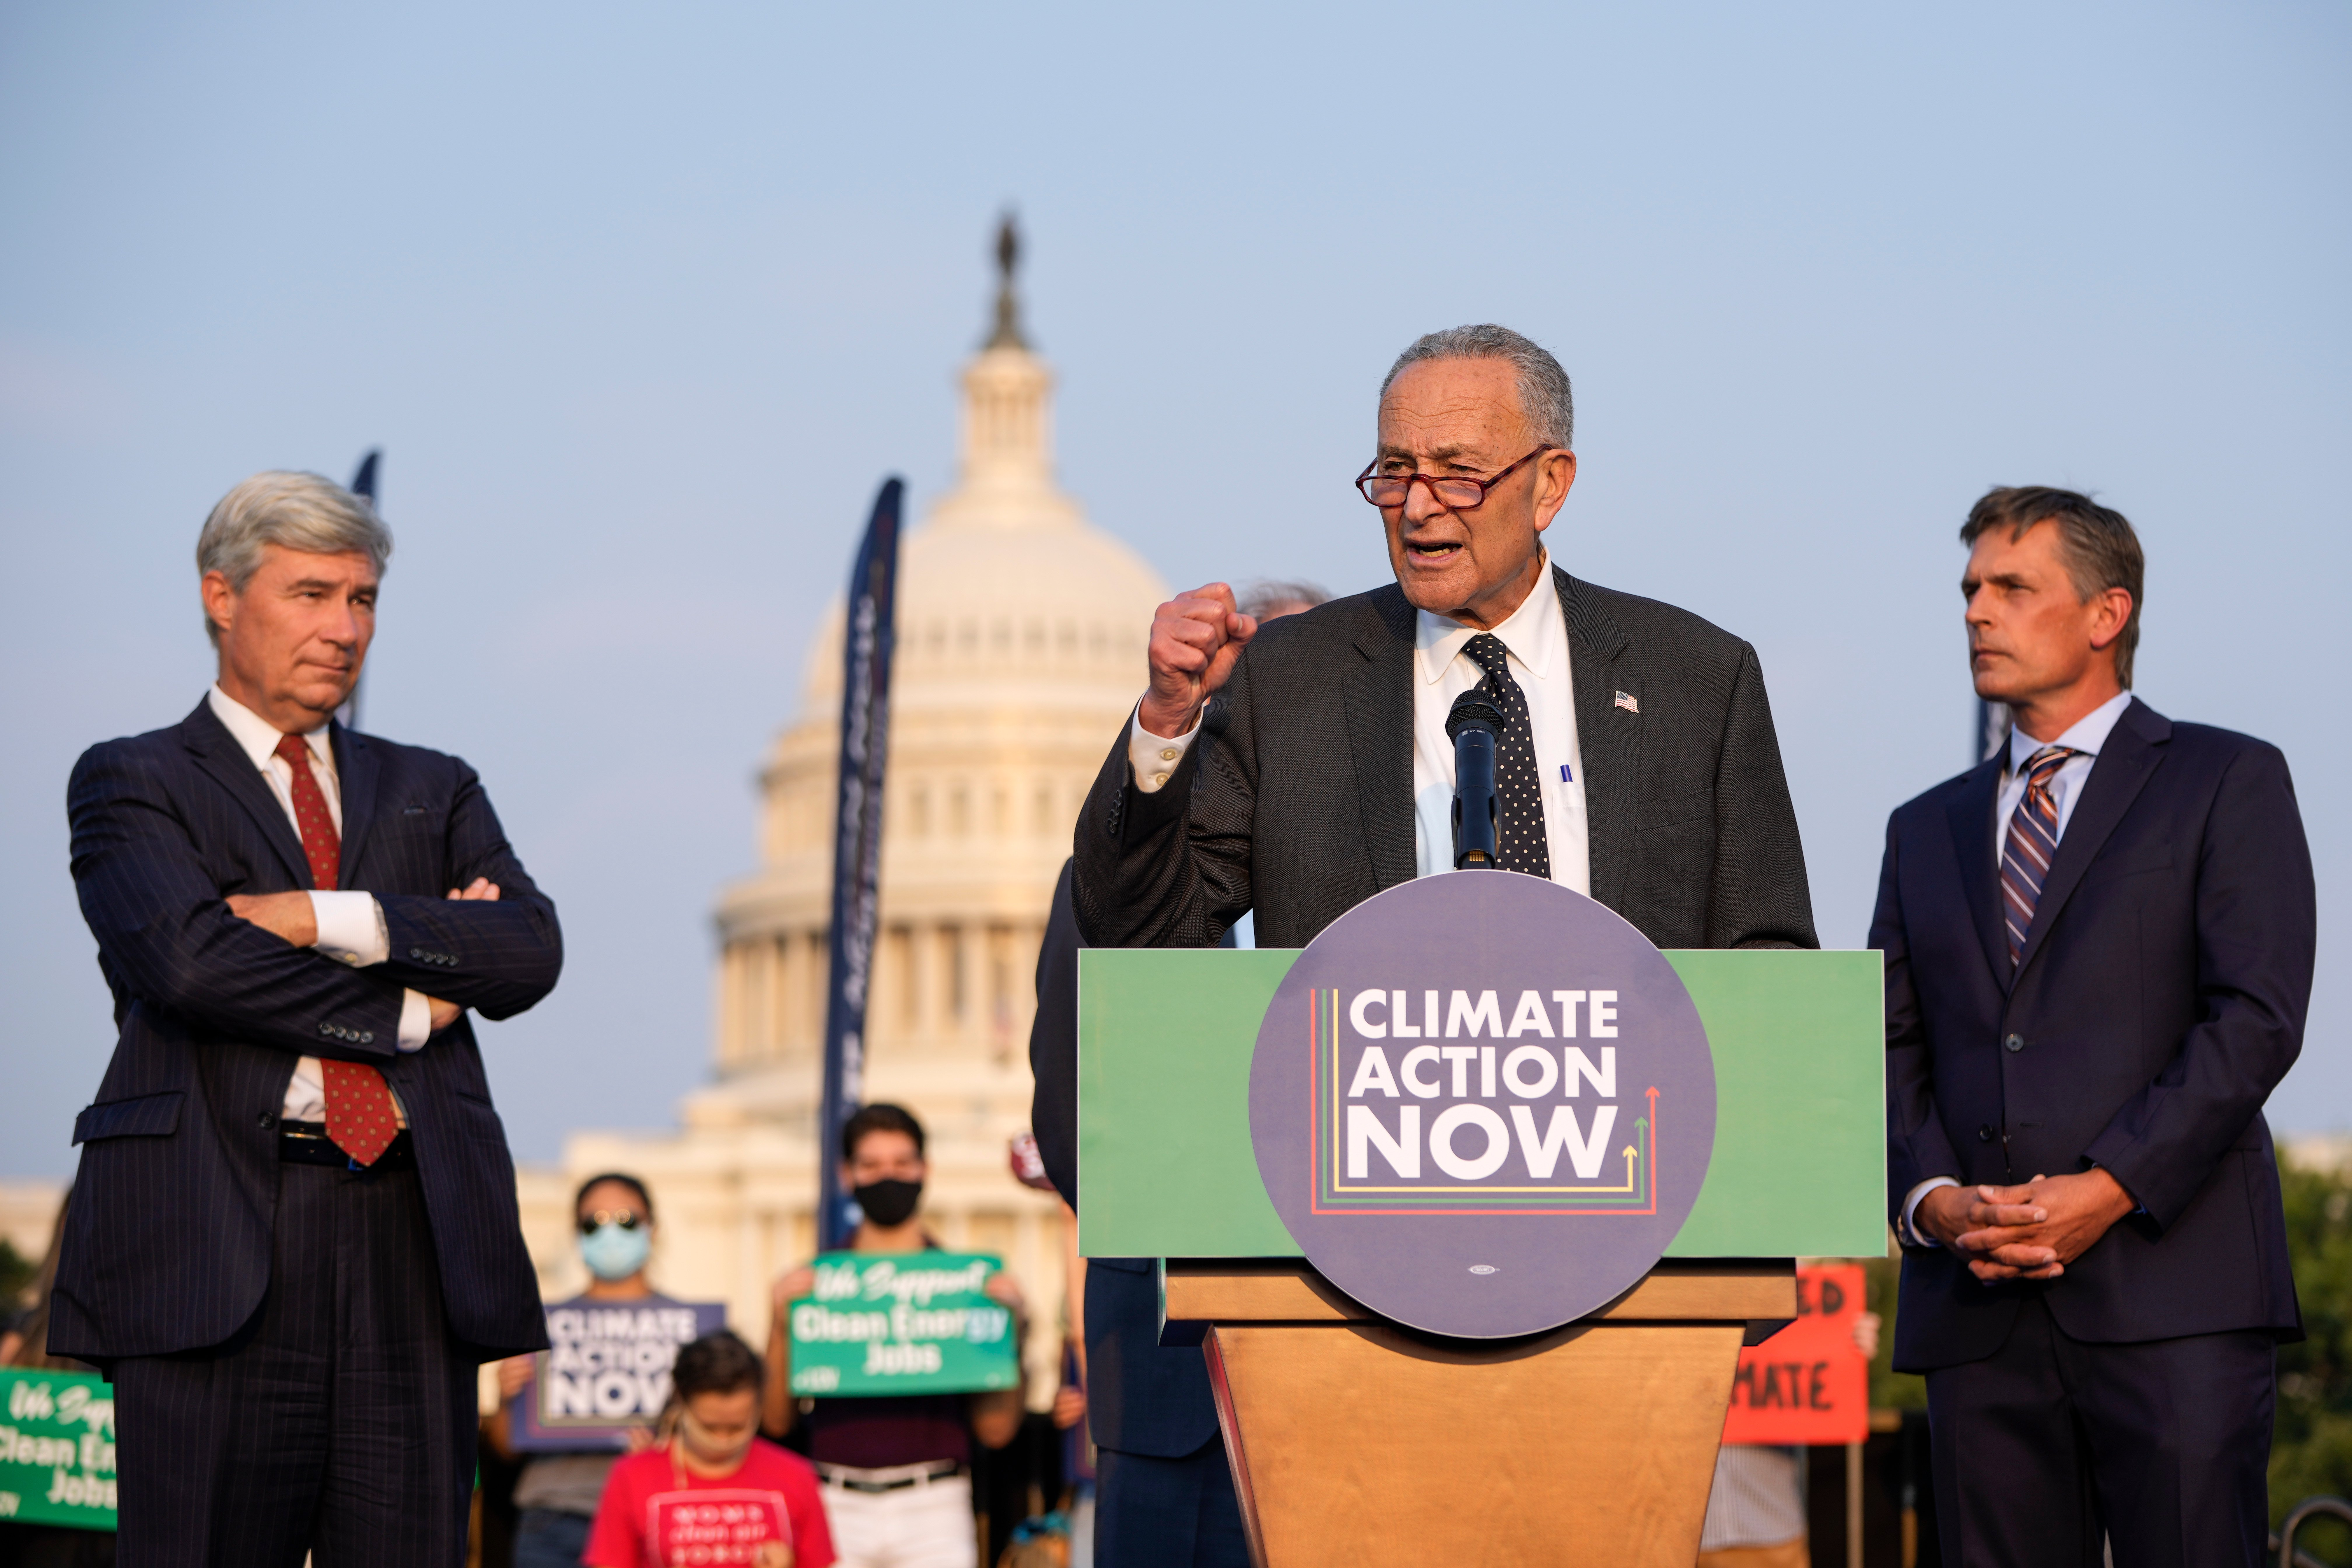 Senate Majority Leader Chuck Schumer speaks during a rally about climate change issues near the U.S. Capitol on Sept. 13. (Drew Angerer/Getty Images)